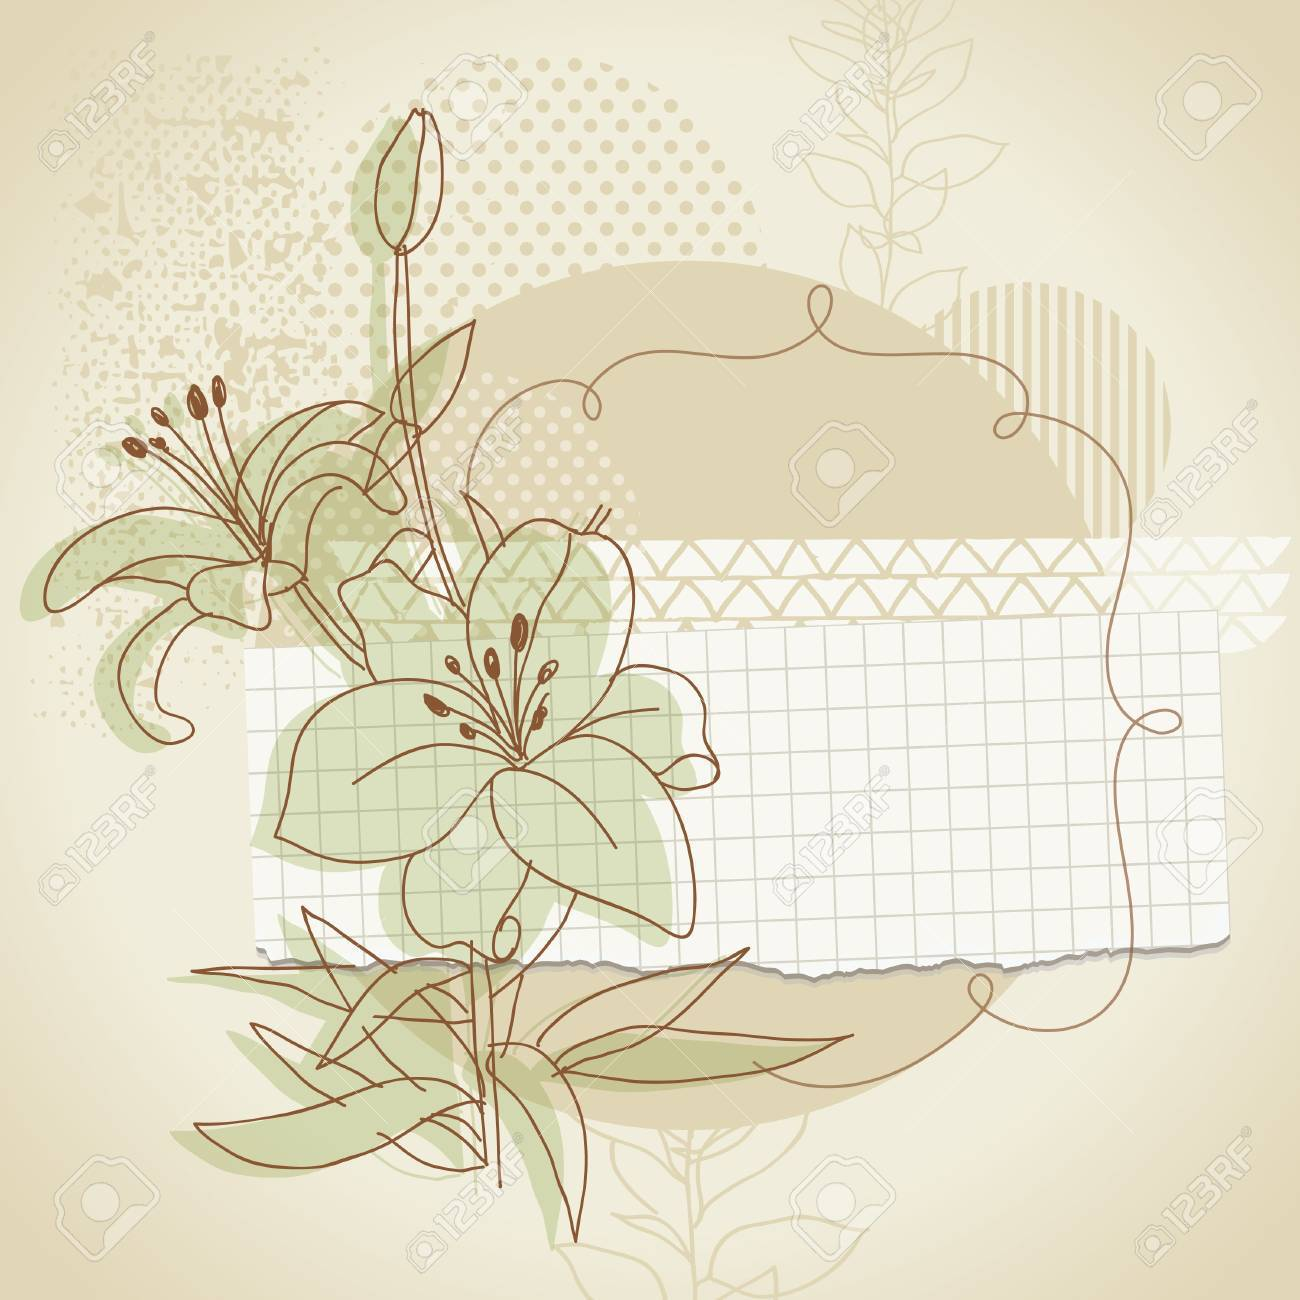 grunge background with floral elements Stock Vector - 11213568